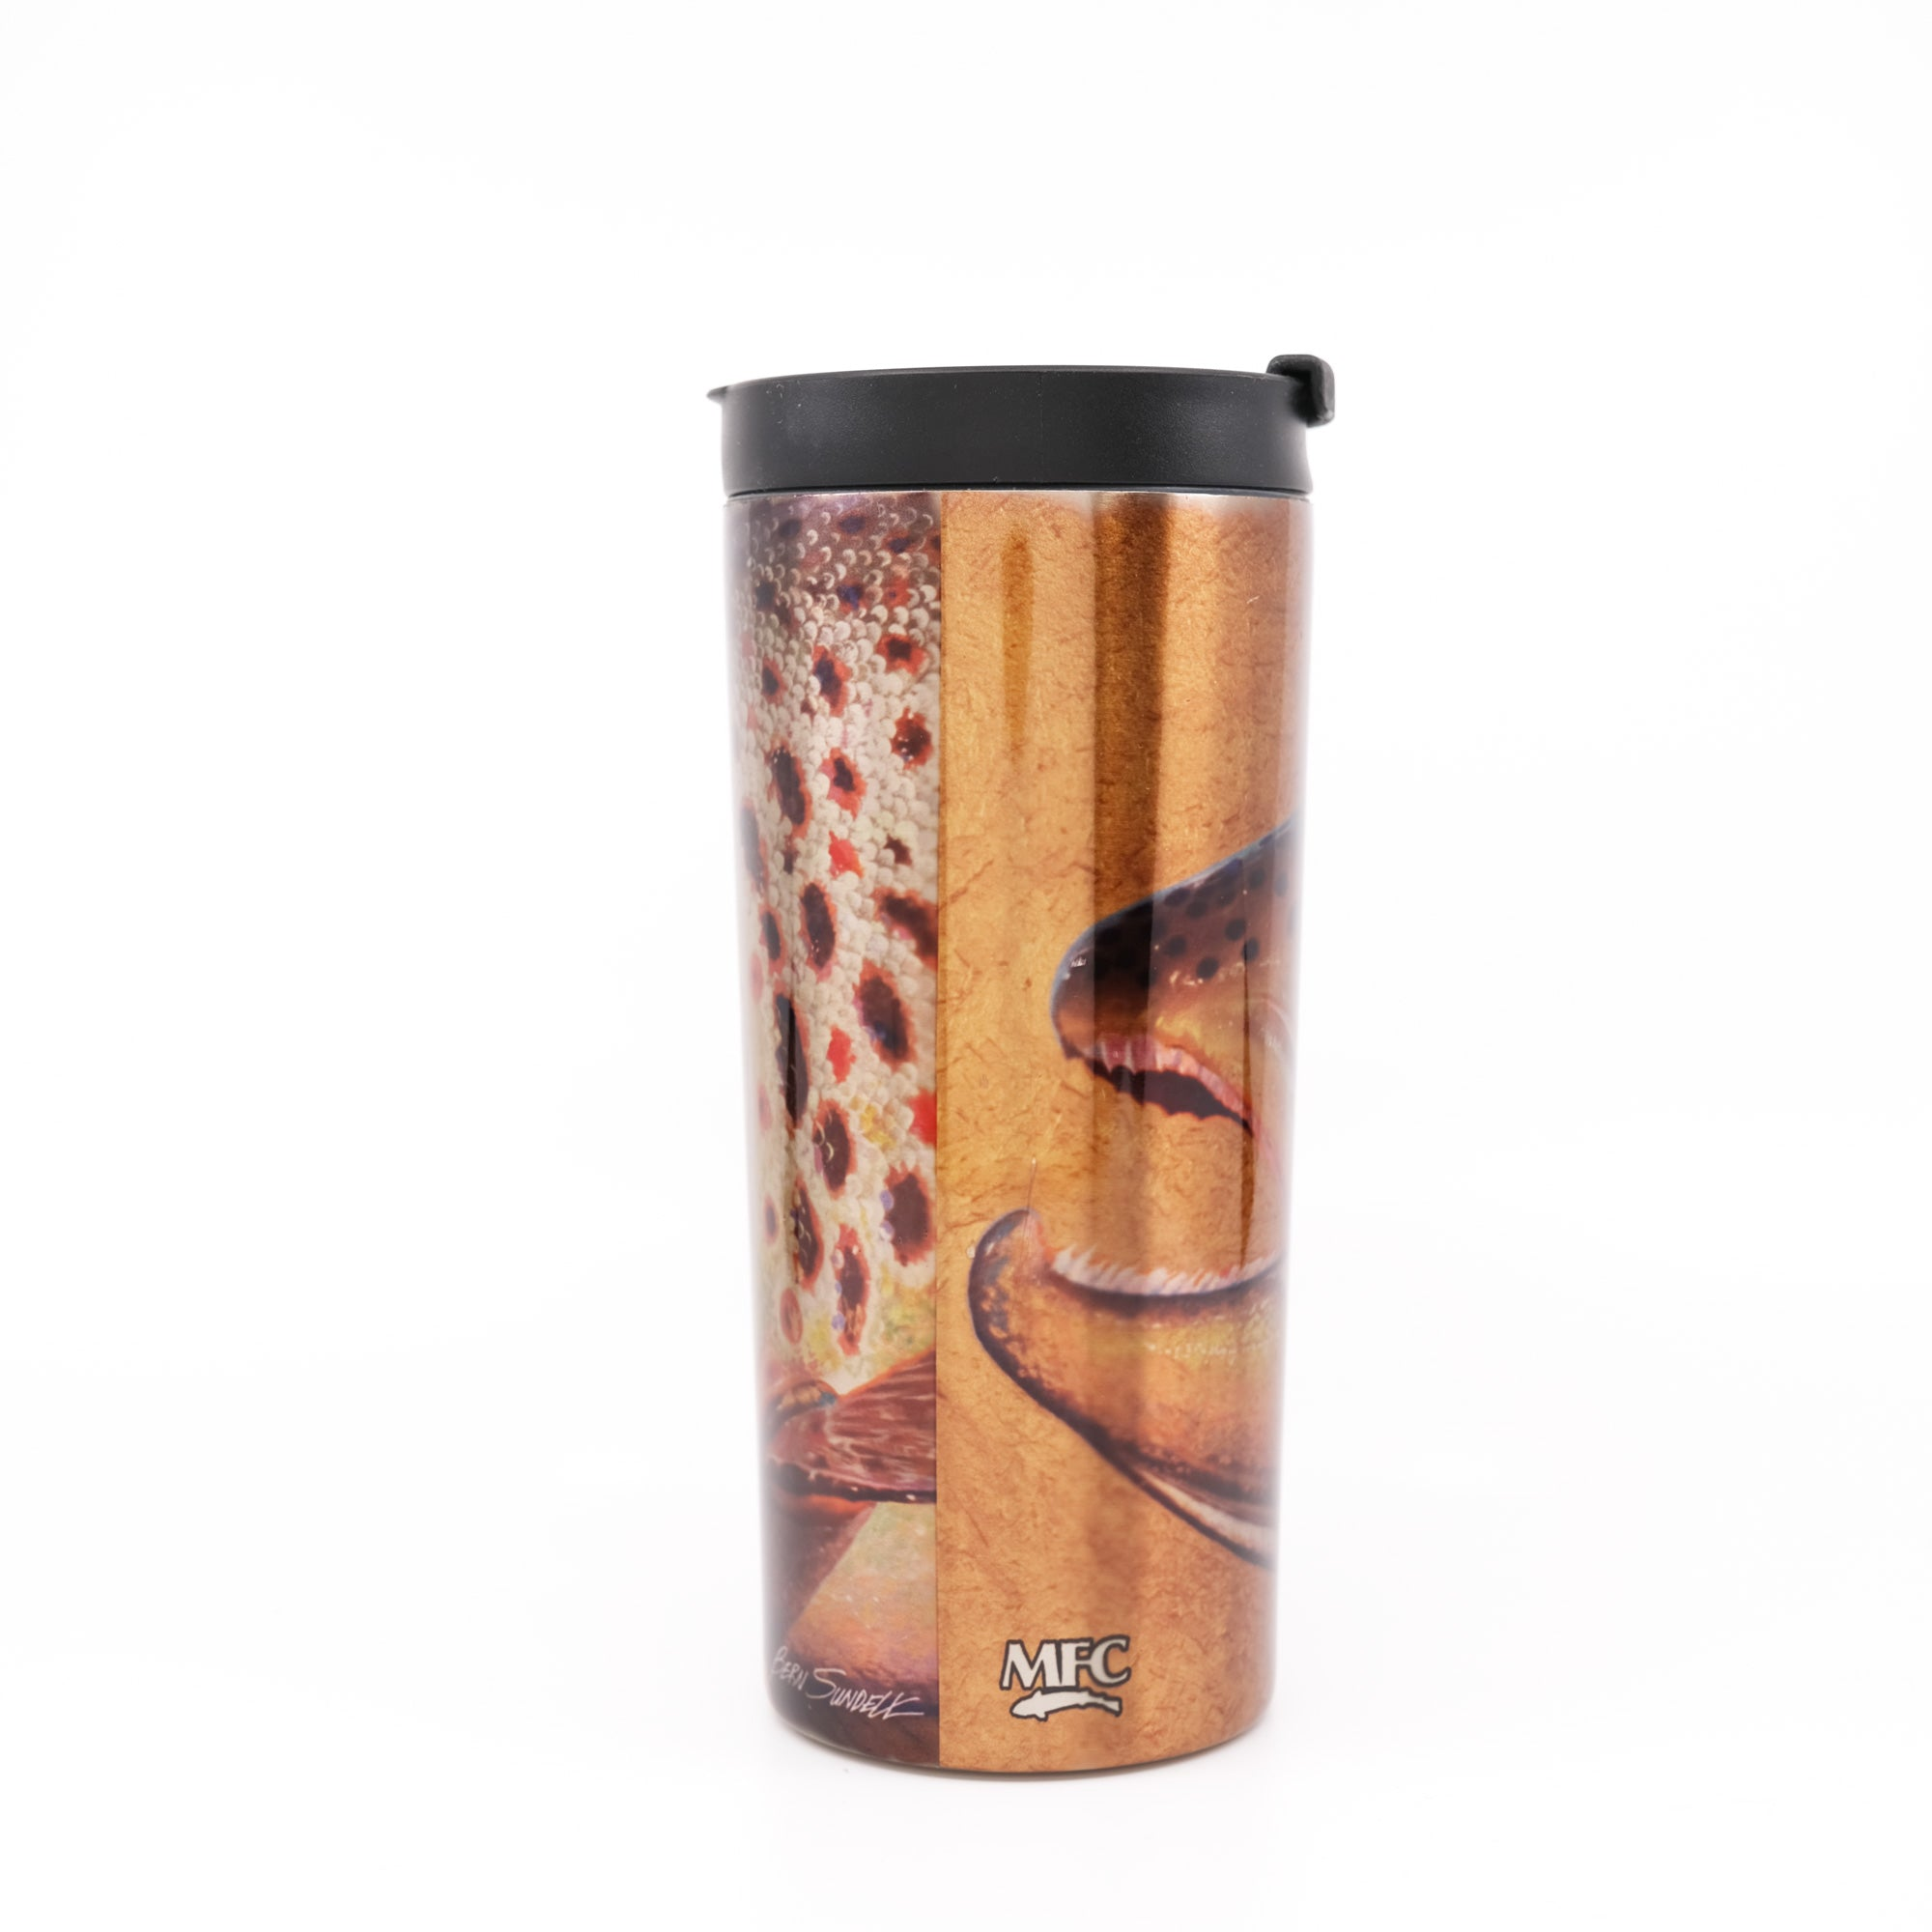 MFC Travel Mug - Sundell's October Brown